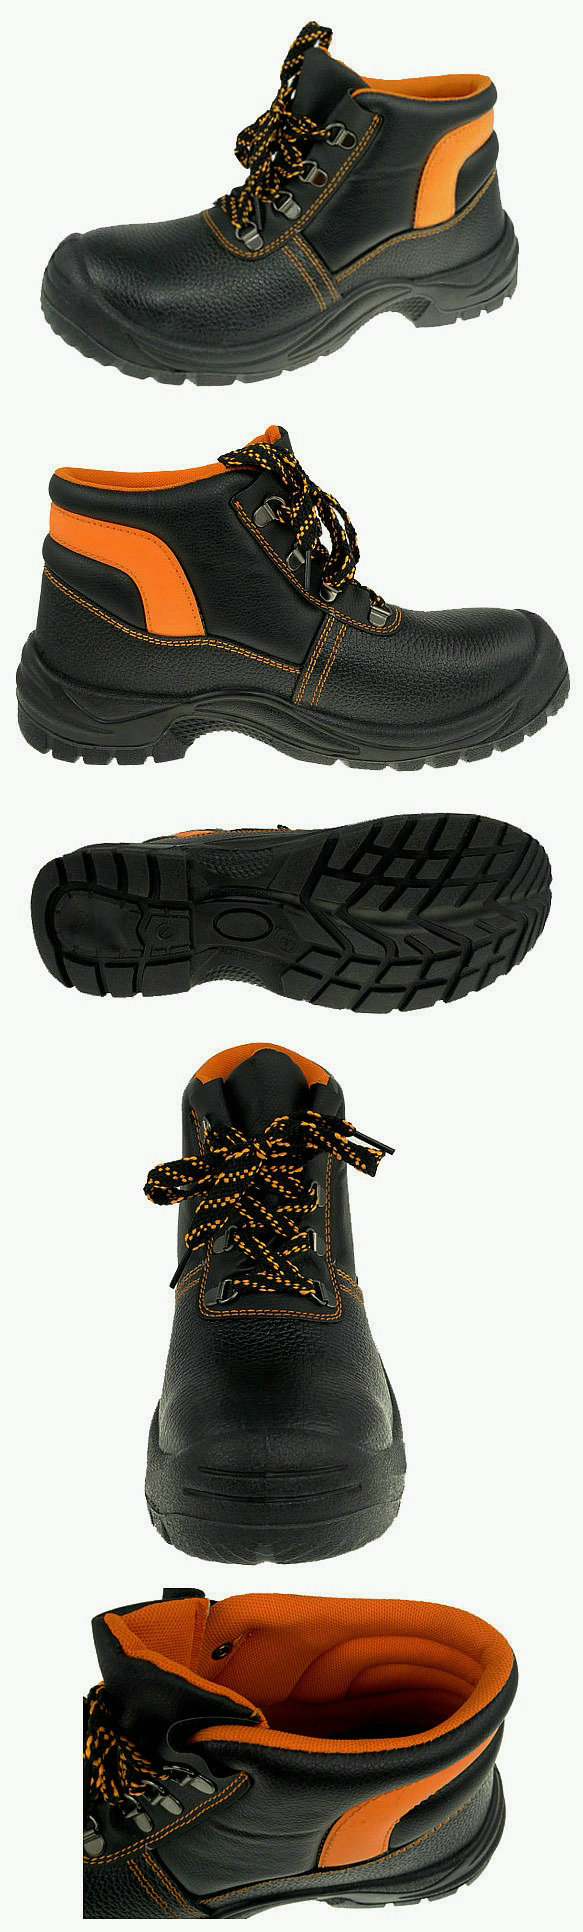 Steel Toe and Midsole Safety Shoes